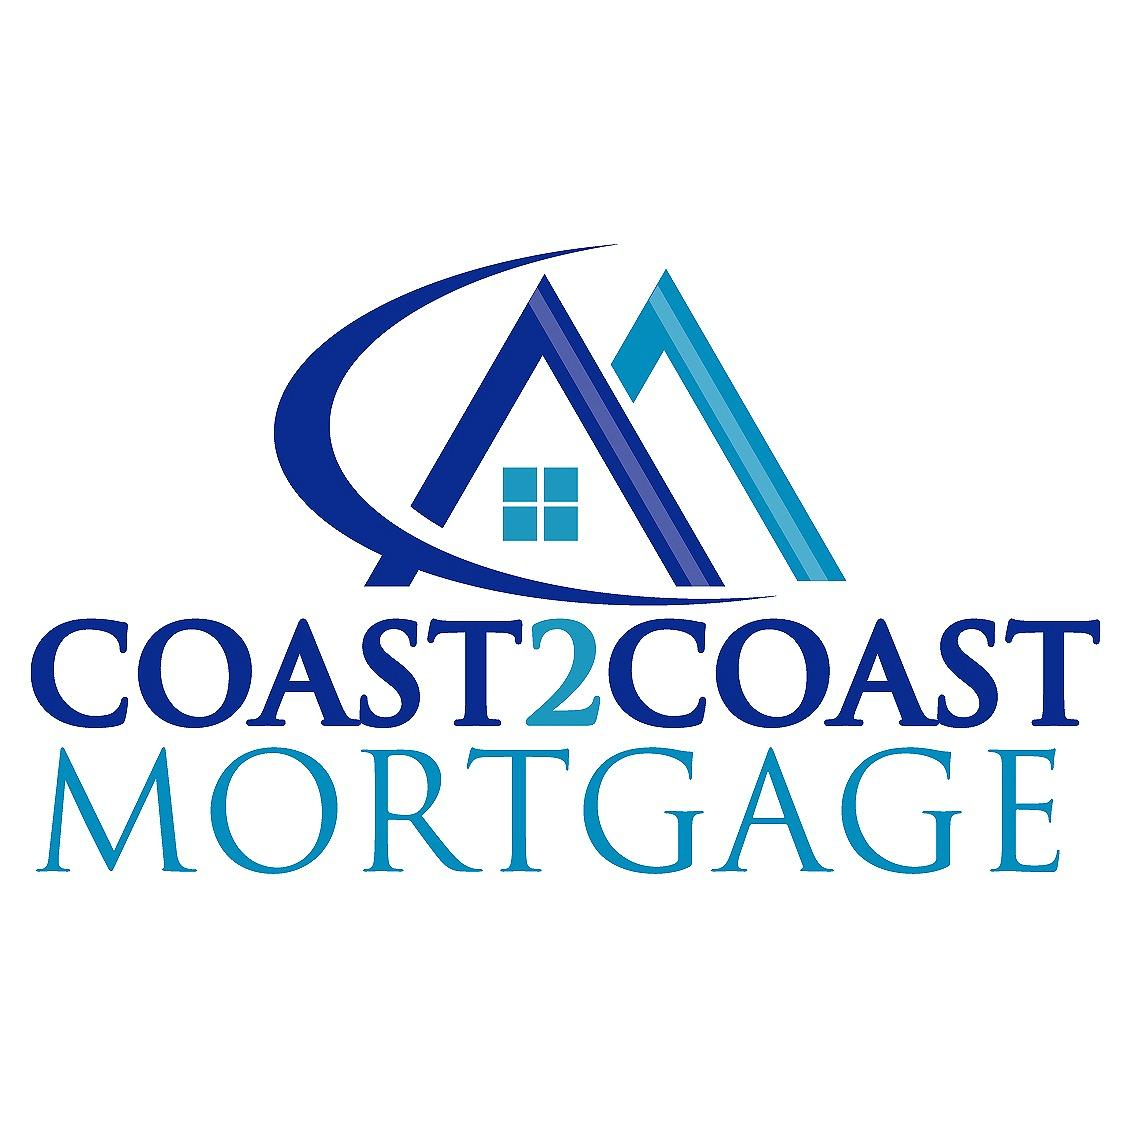 Coast2Coast Mortgage - Hard Money Division image 0